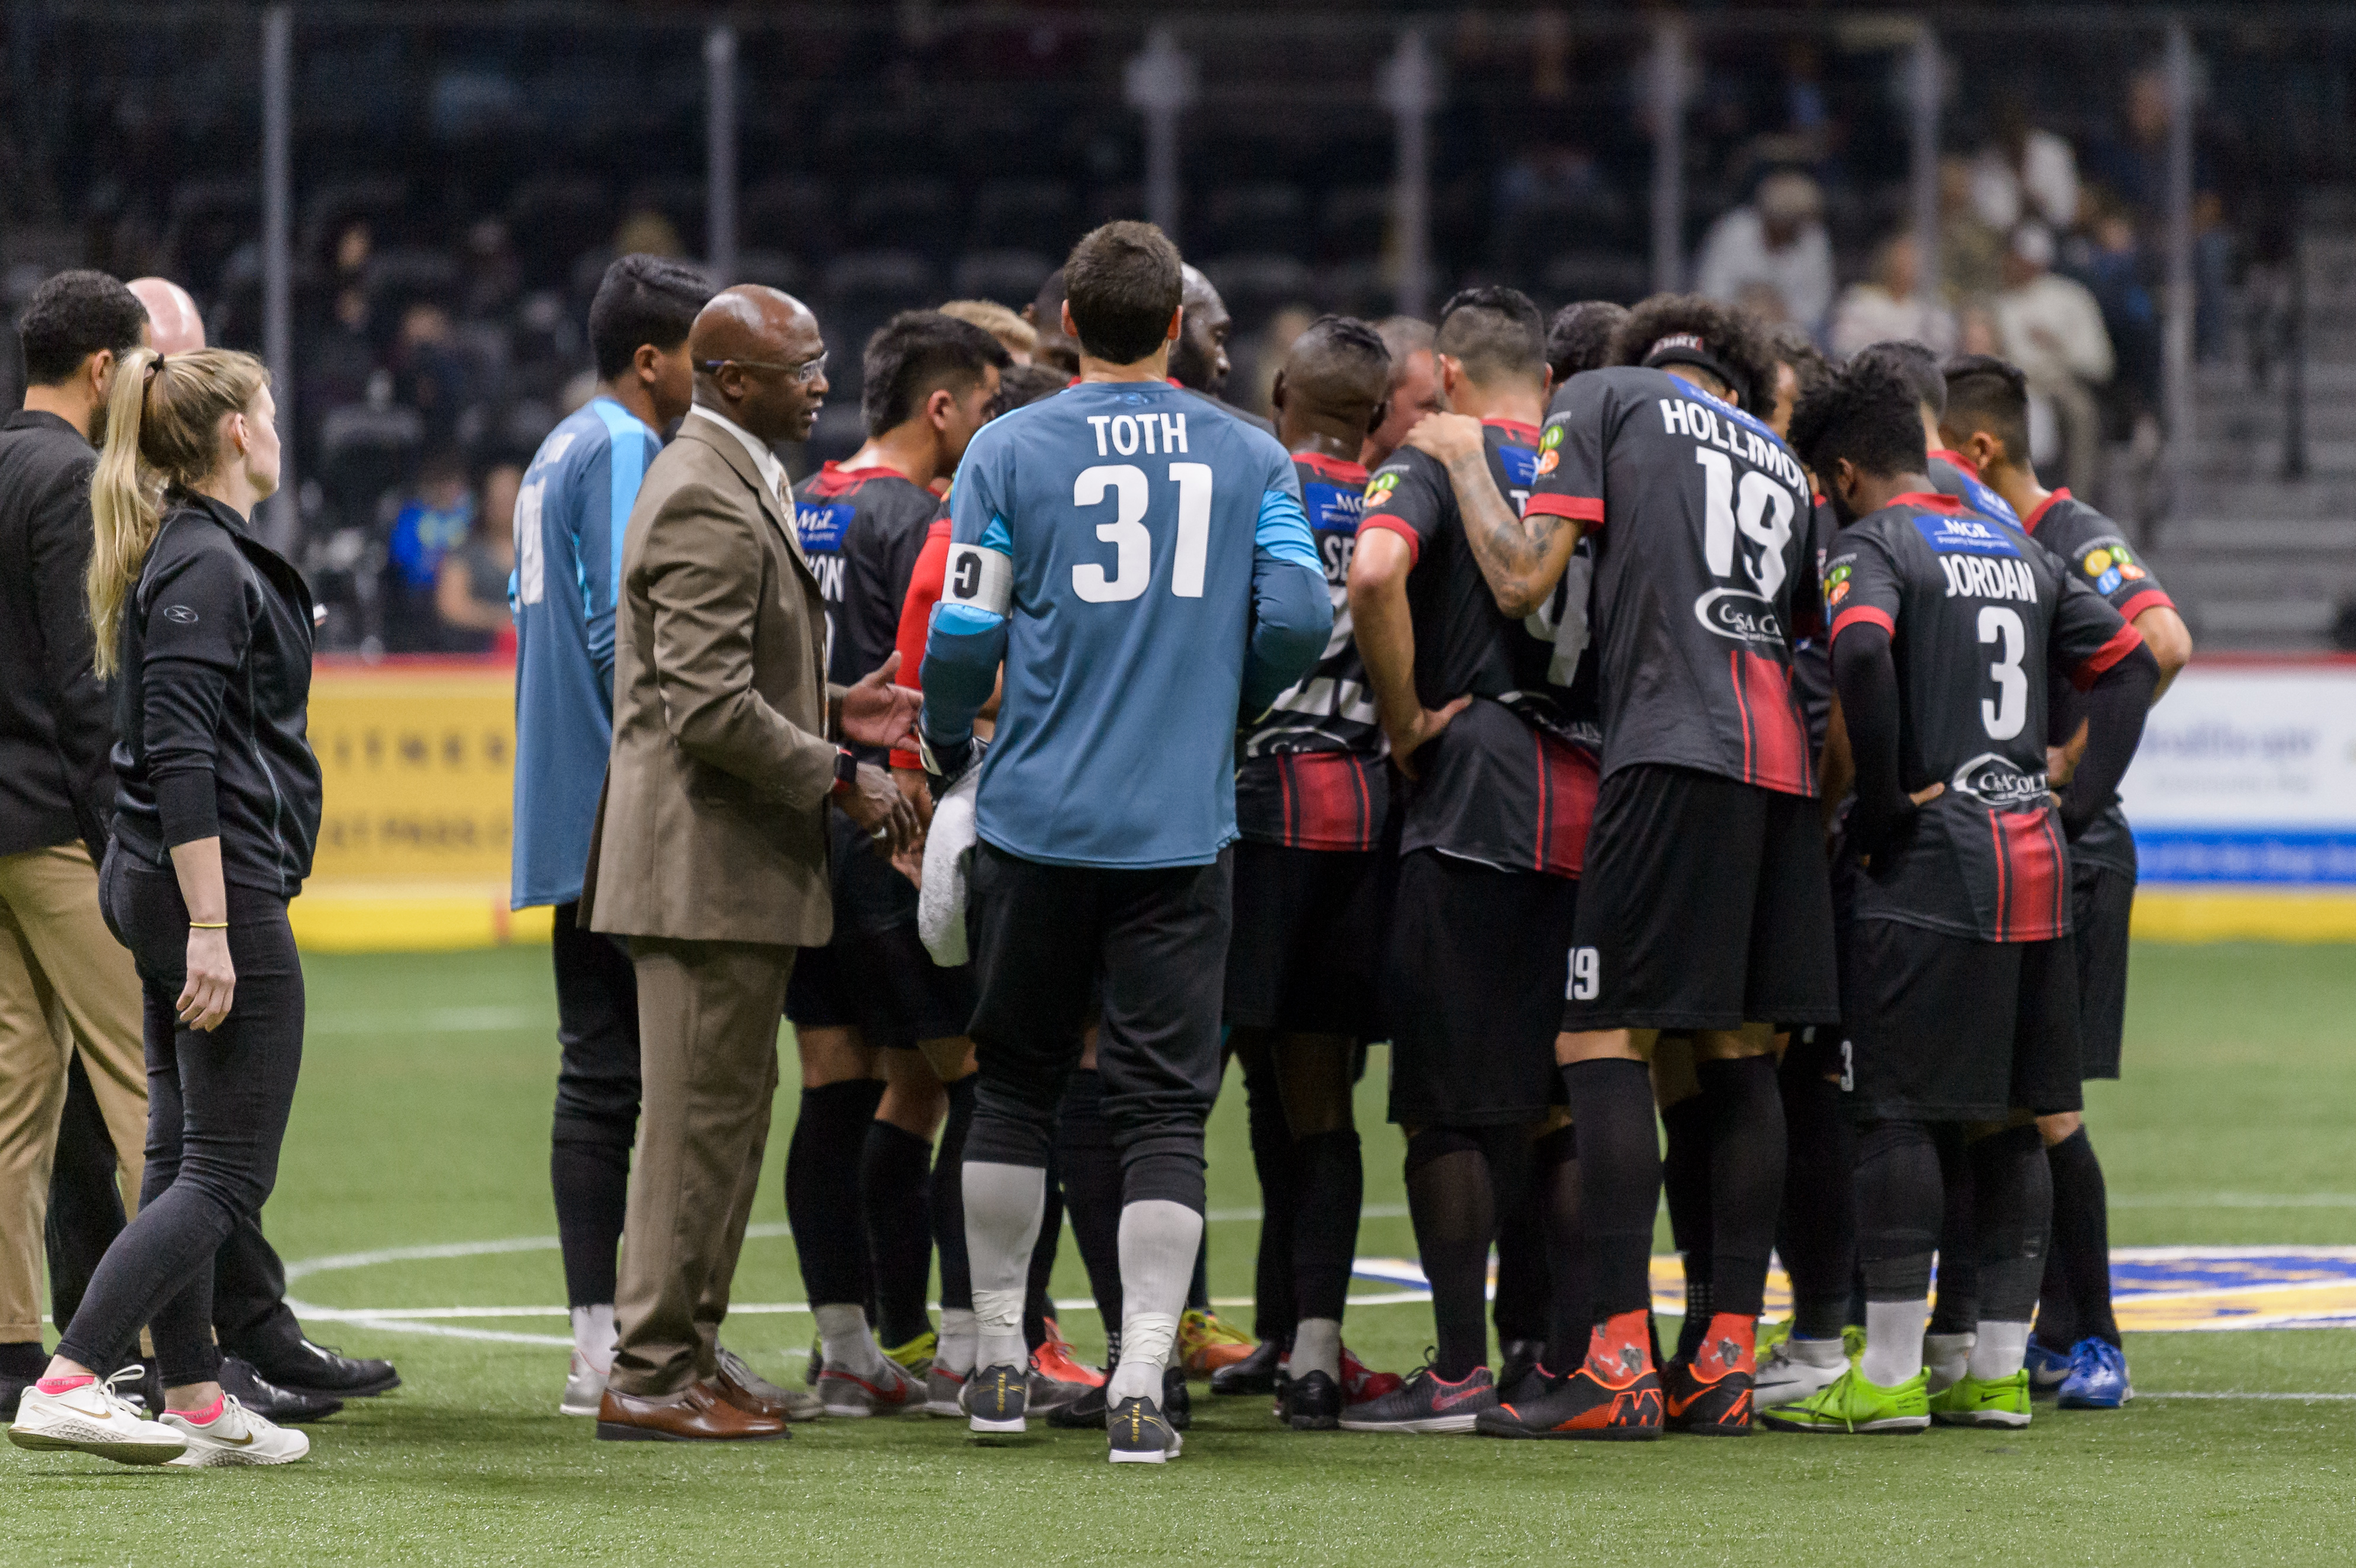 San Diego Sockers vs Ontario Fury